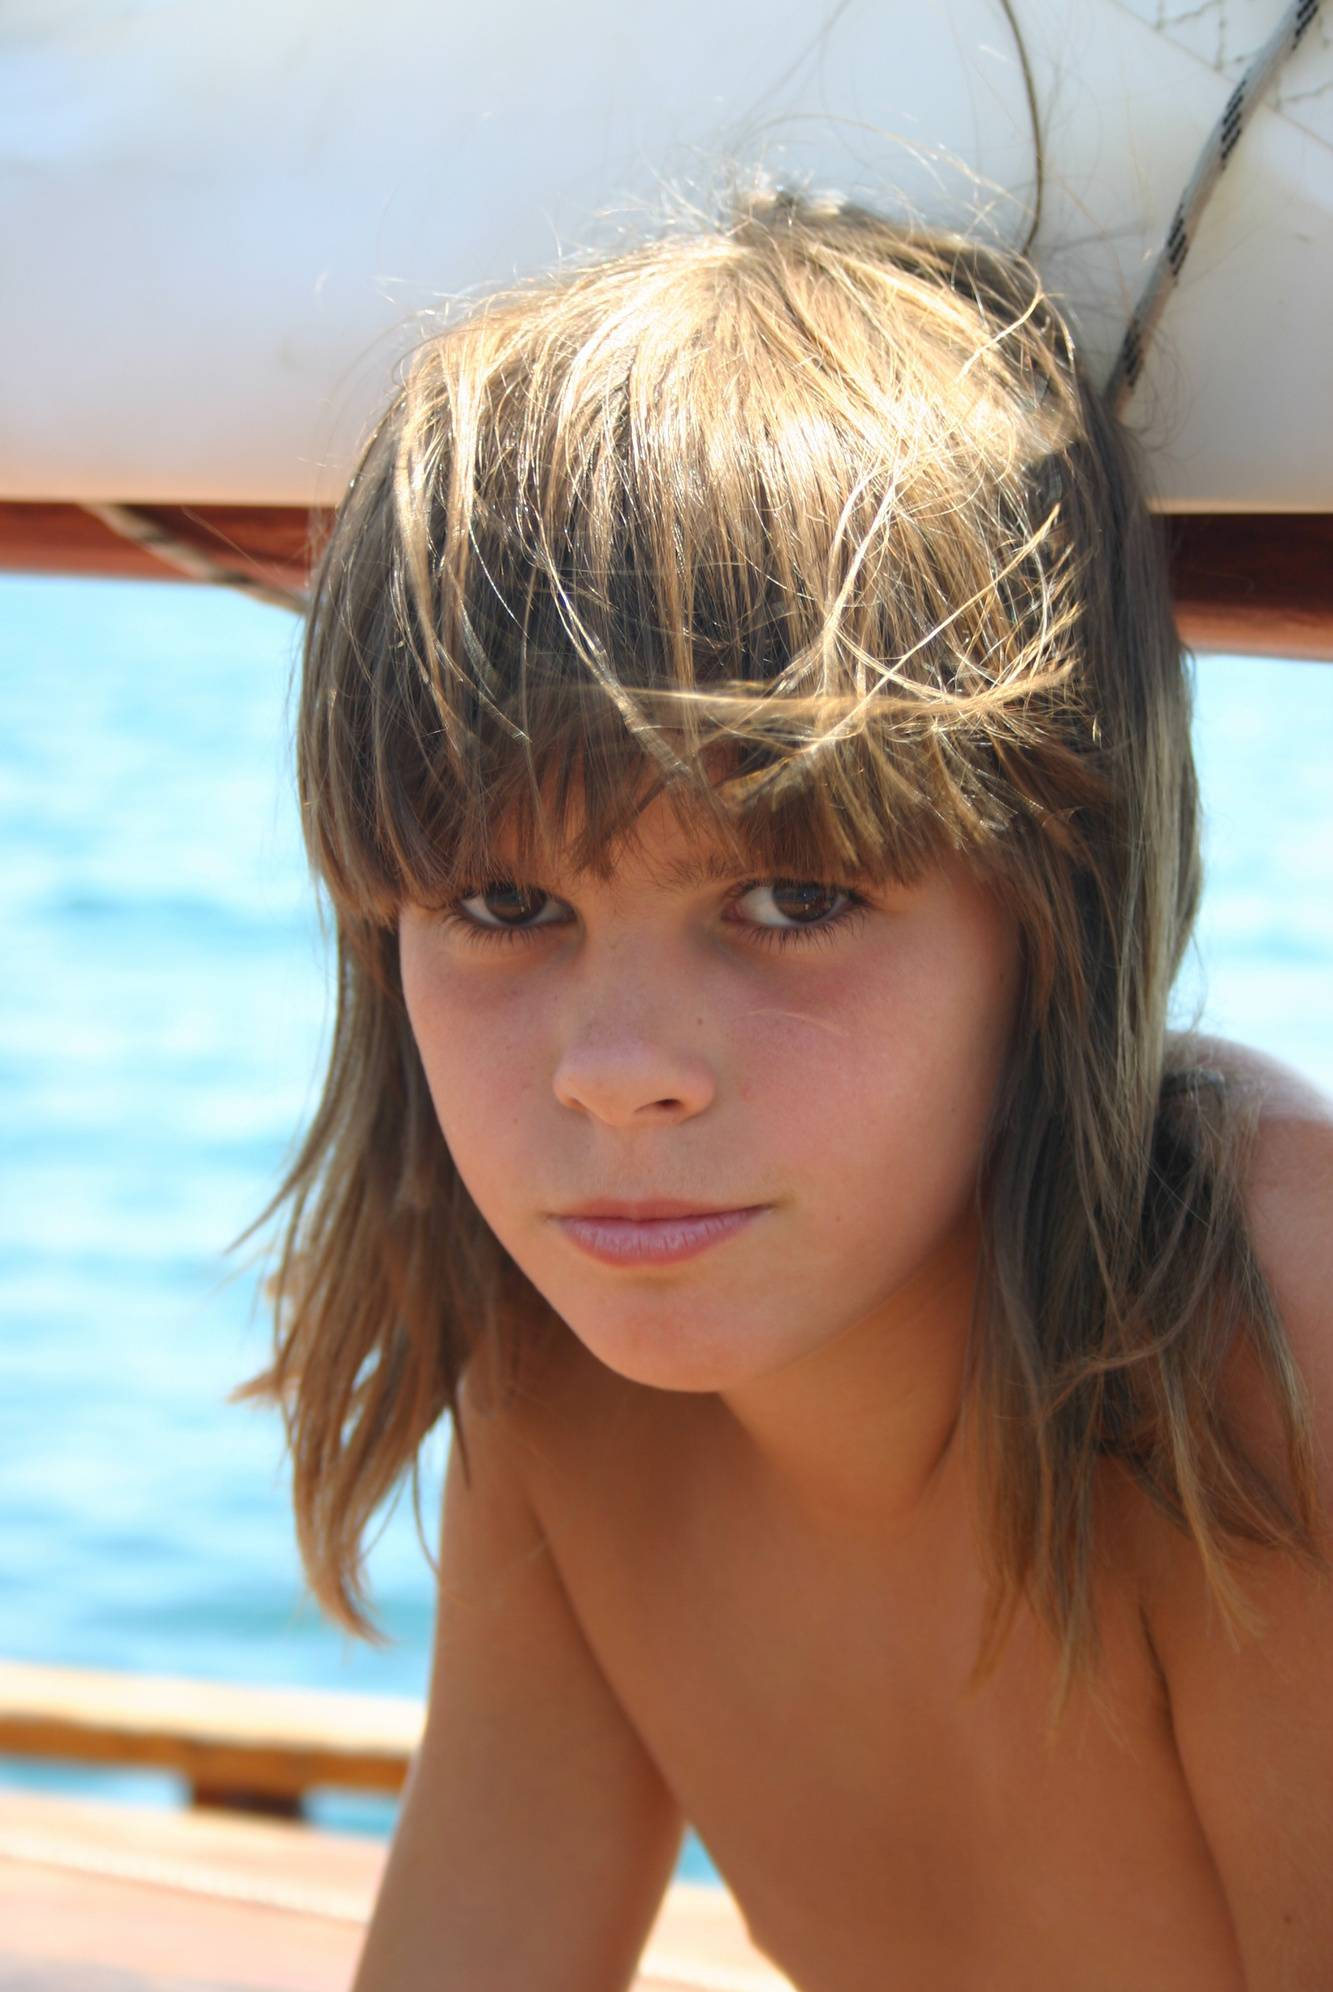 Nudist Pictures Ship Shape Family Profiles - 2